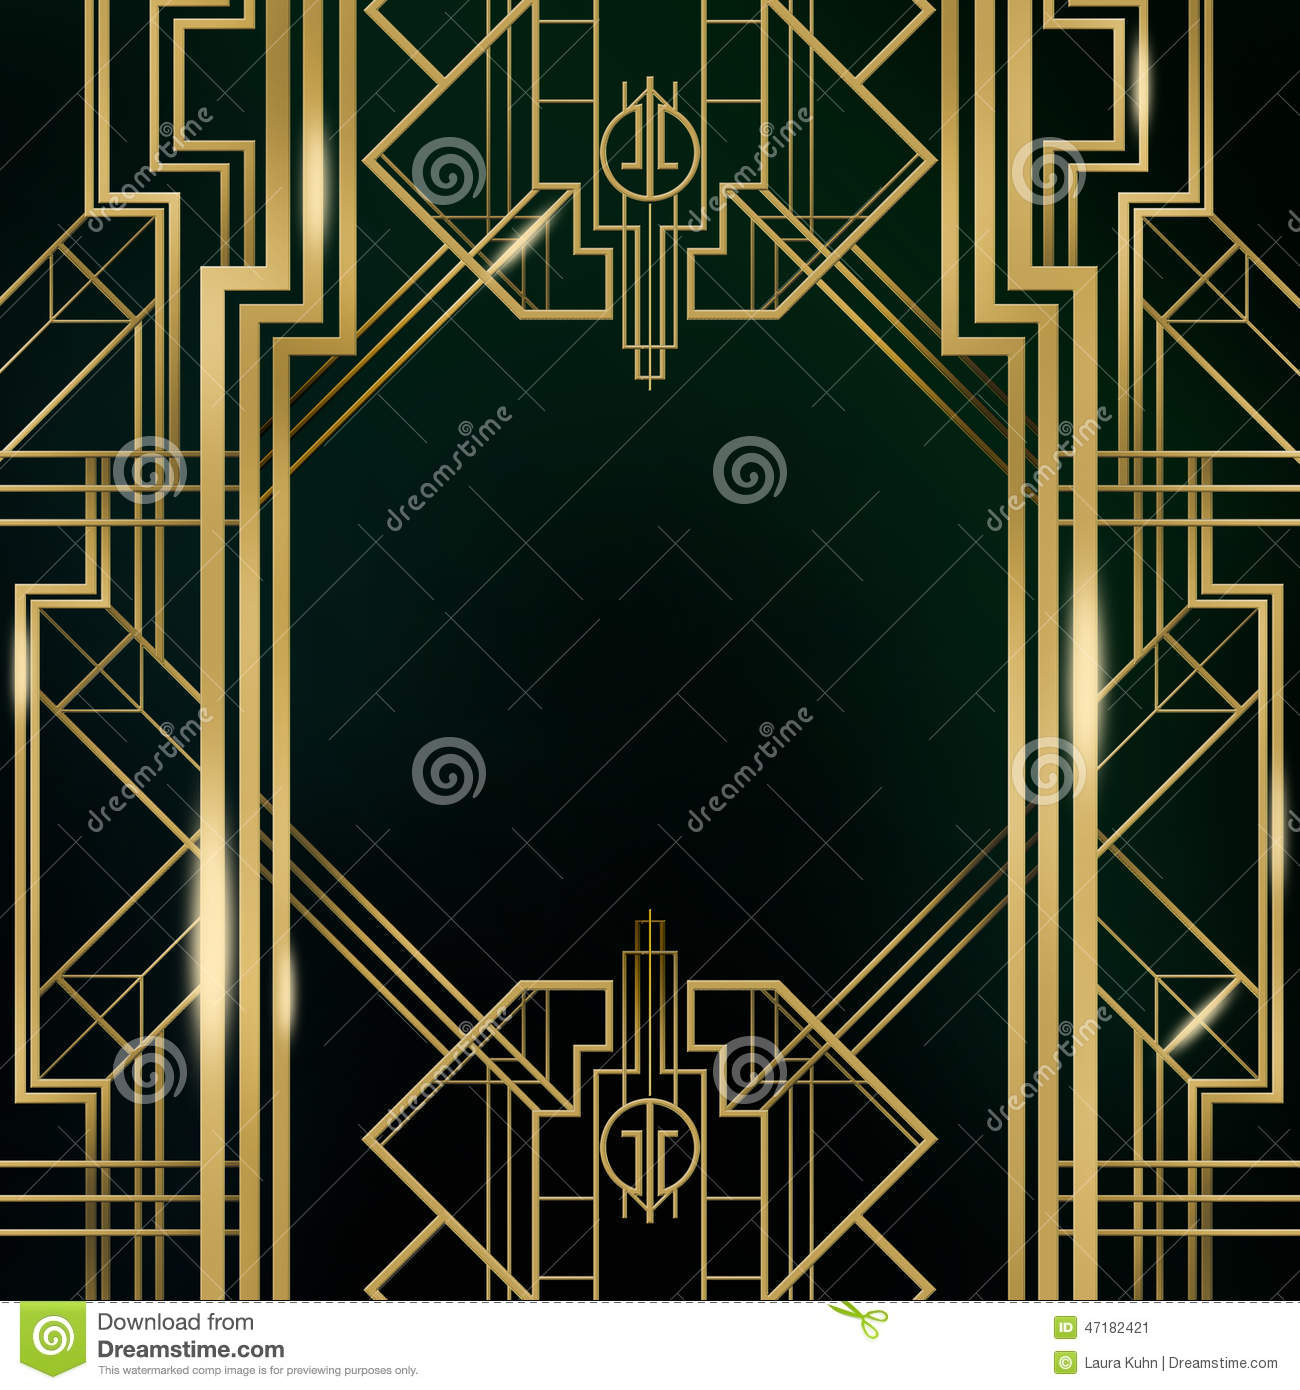 art deco great gatsby background stock image illustration of